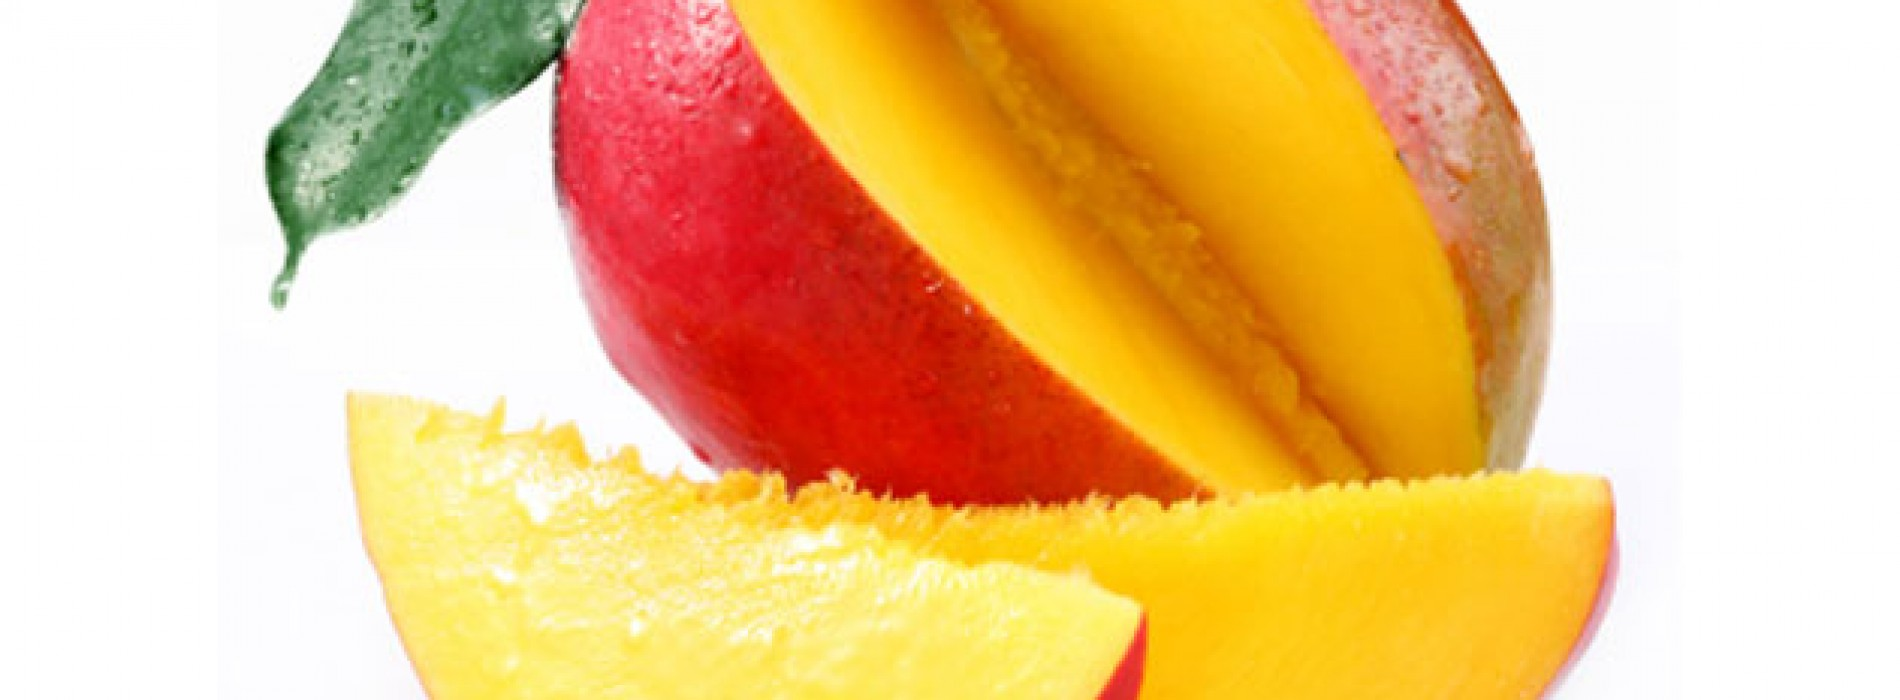 What's so great about mangoes?